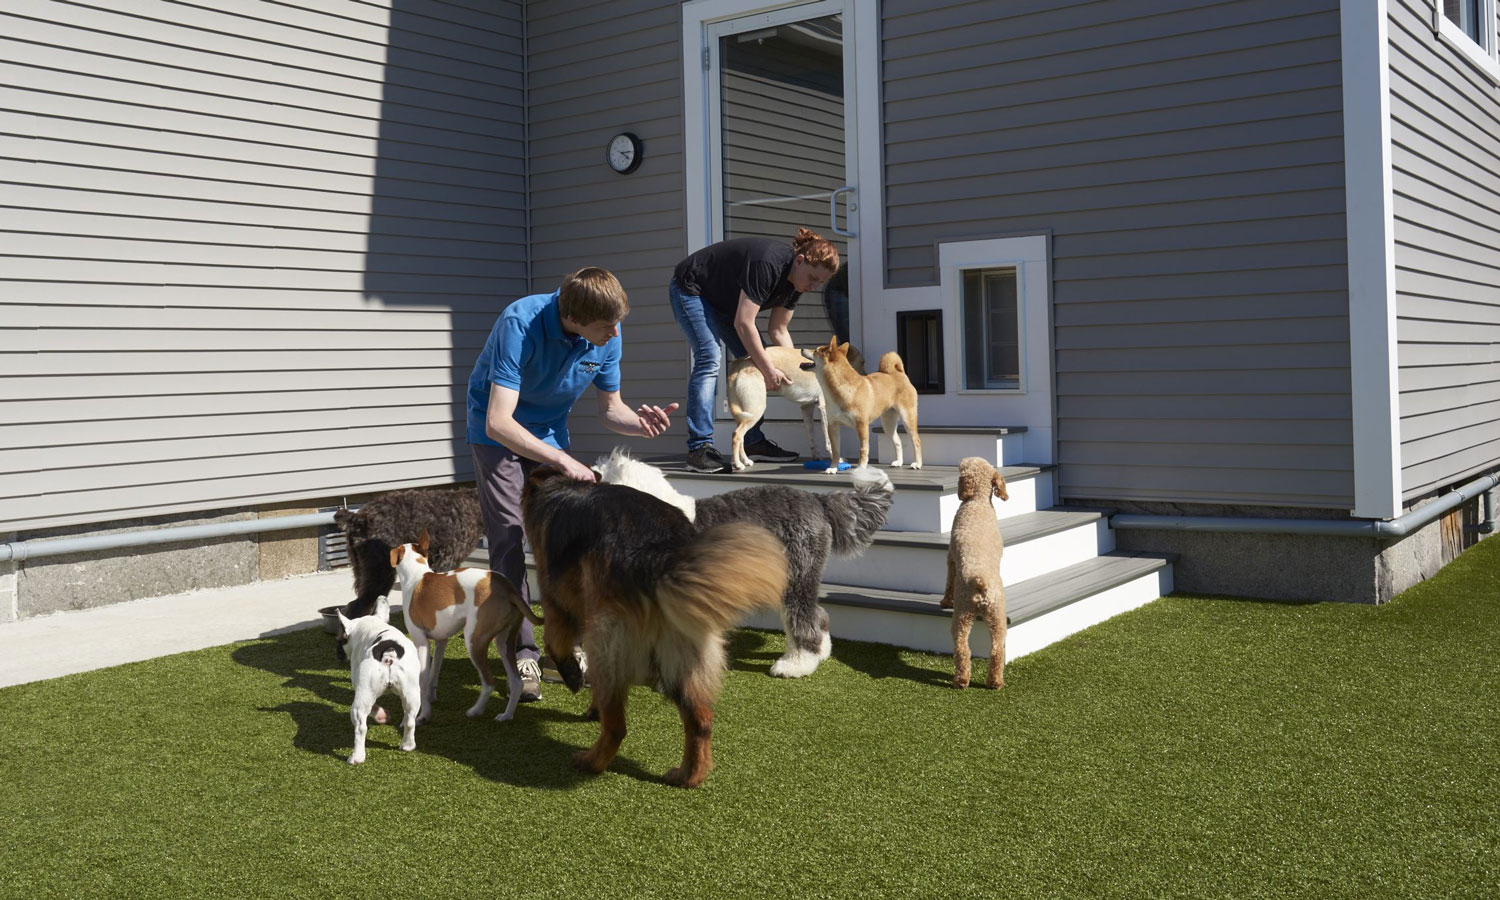 Outdoor play at Bark City